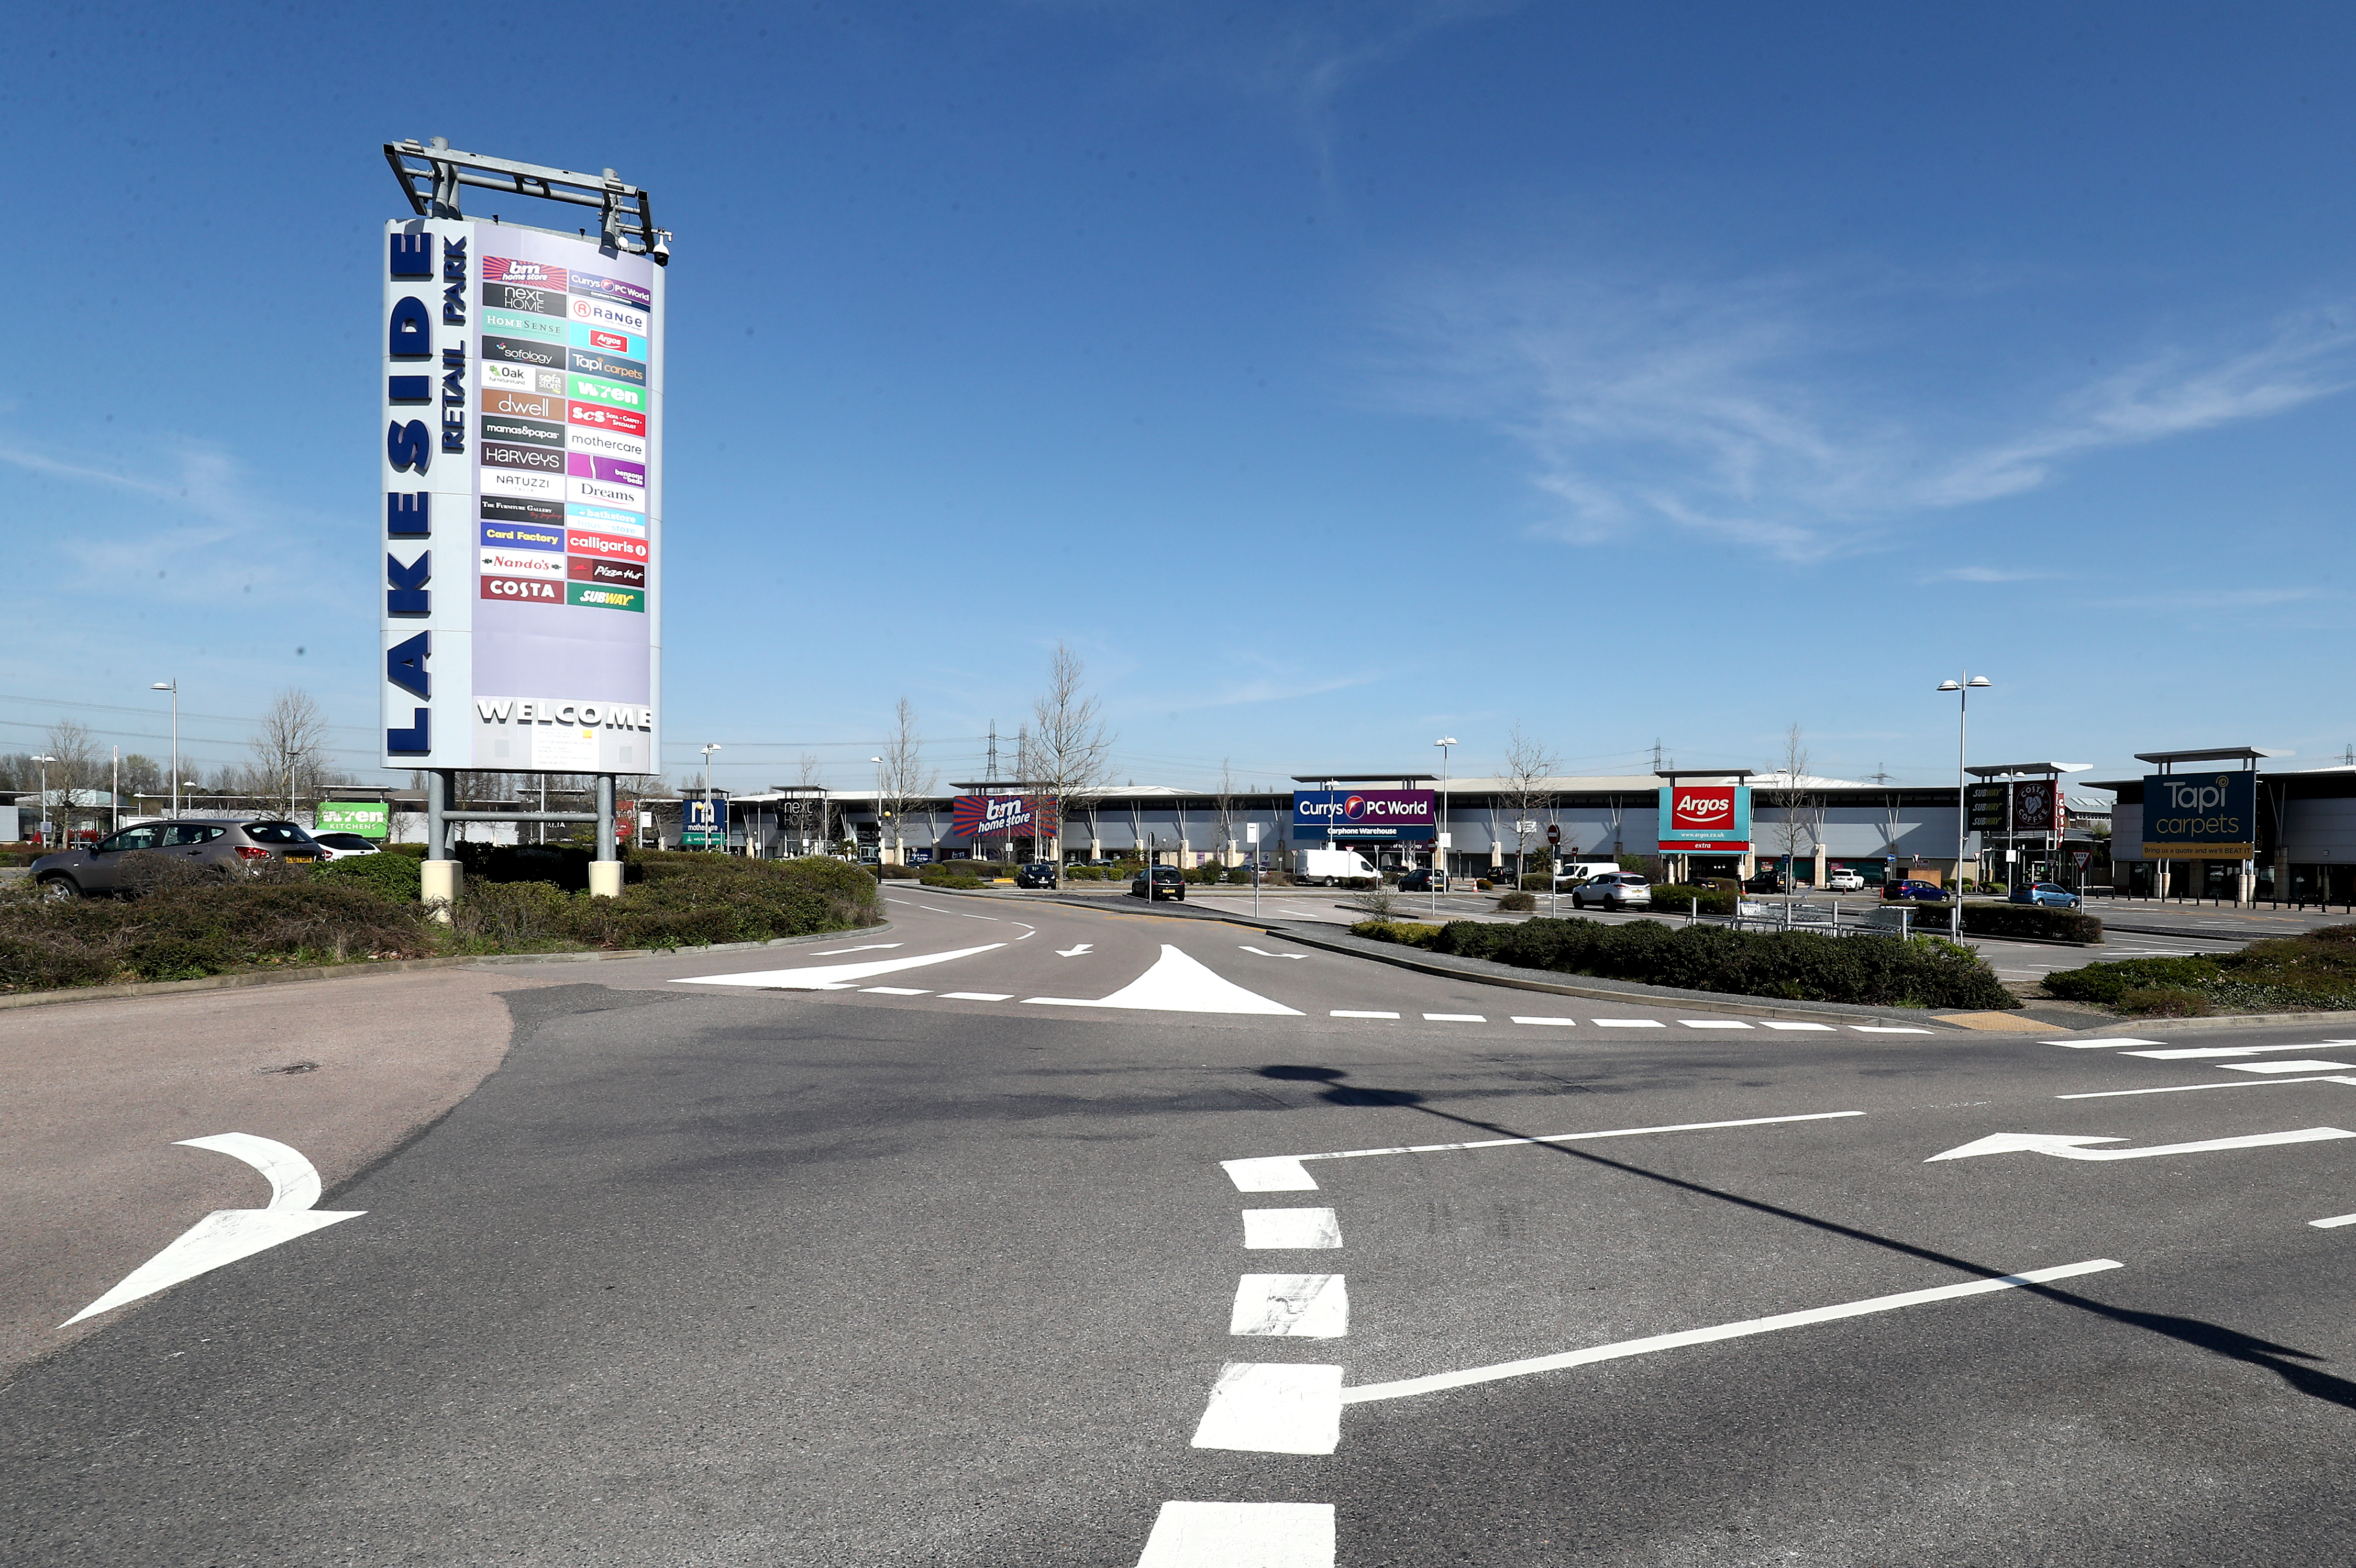 A view of Lakeside Retail Park in Thurrock, Essex, the day after Prime Minister Boris Johnson put the UK in lockdown to help curb the spread of the coronavirus.